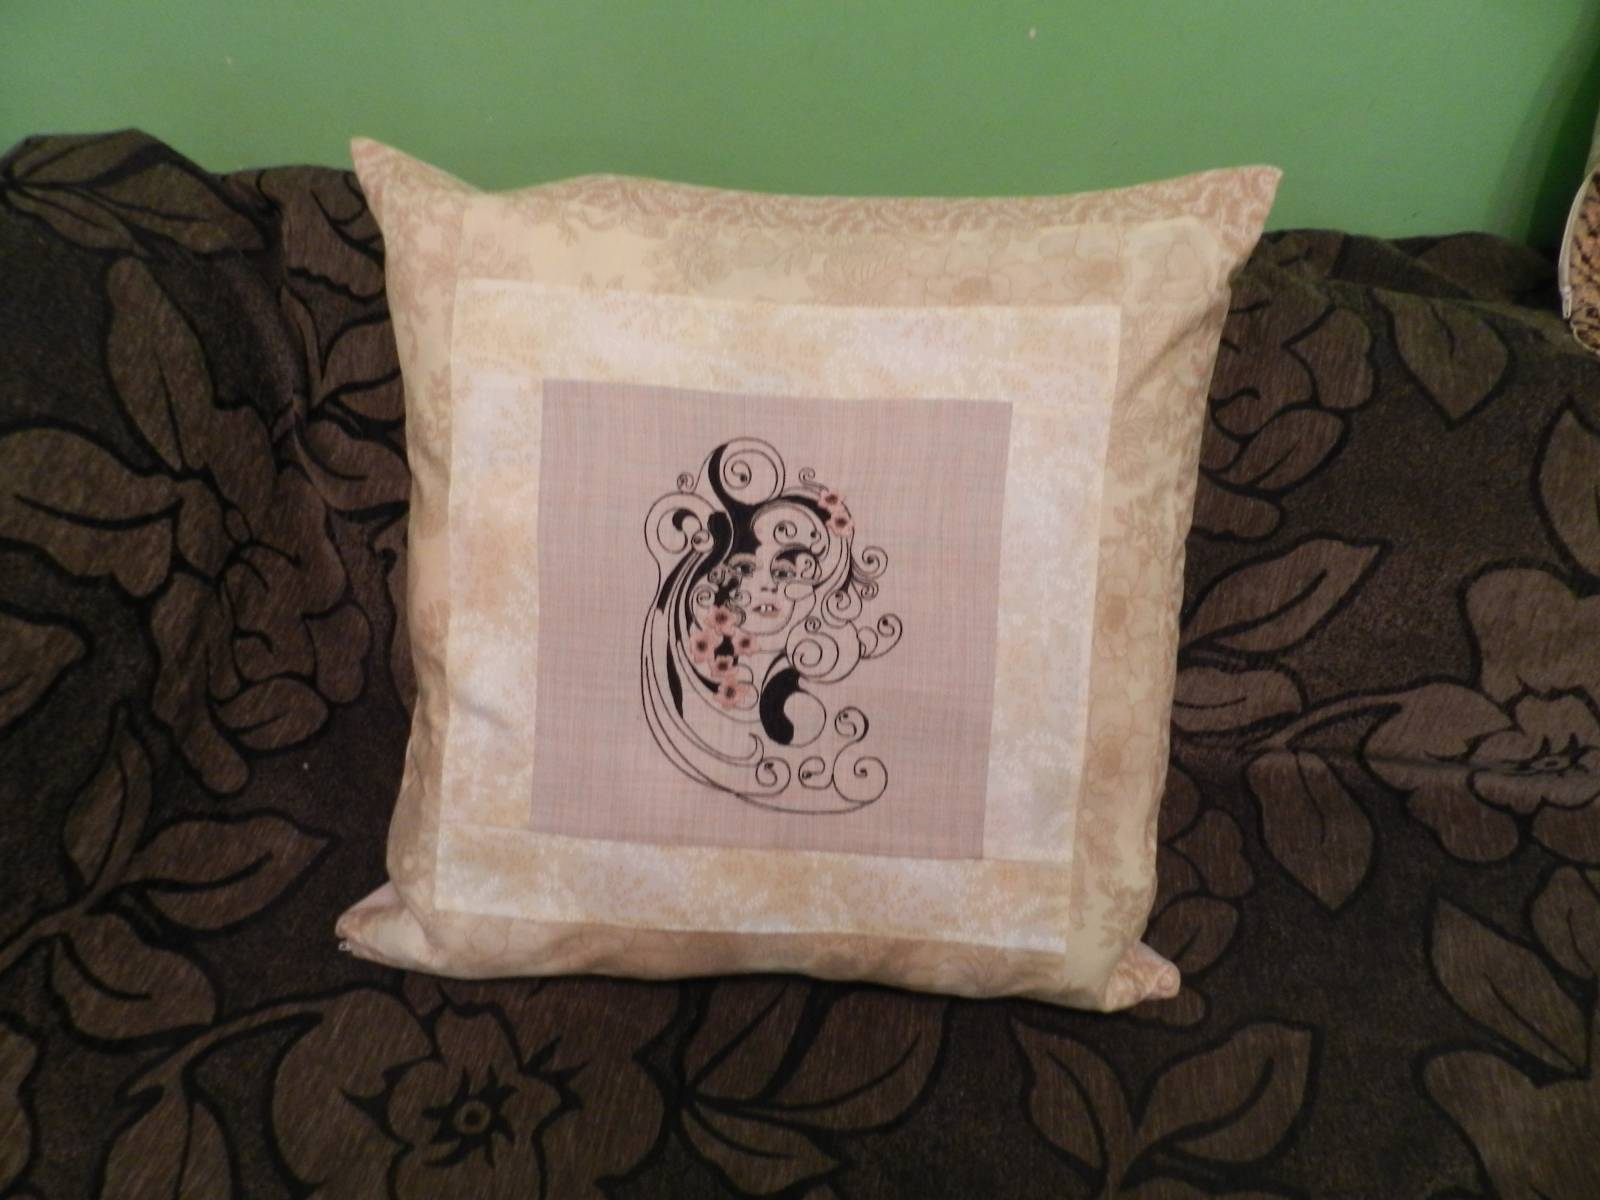 Pillowcase with embroidered woman design